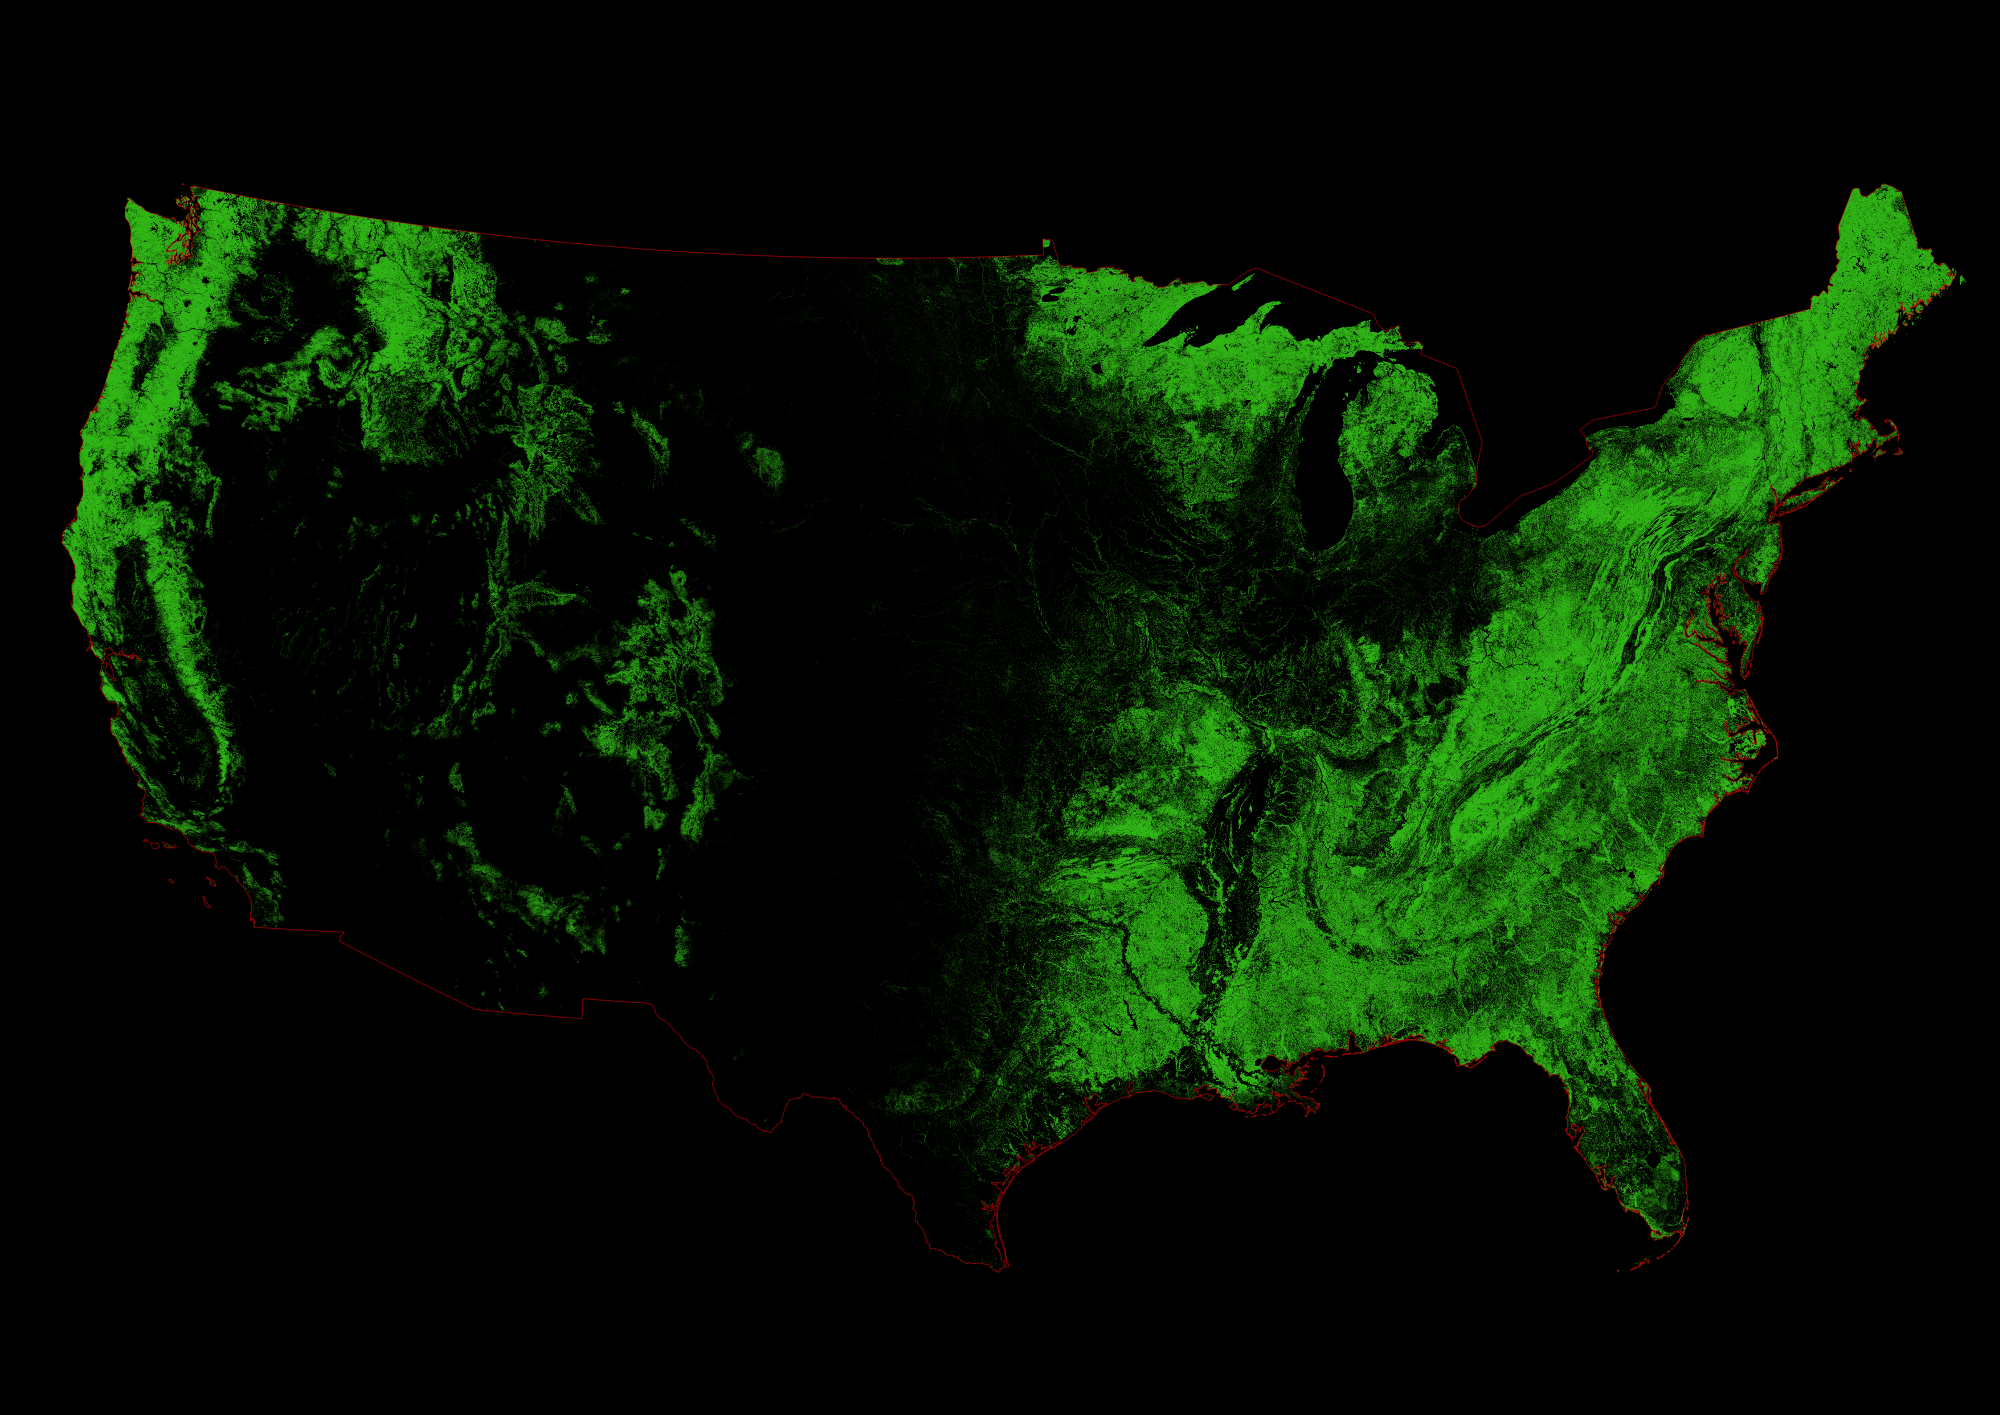 Forest cover map of the Unites States